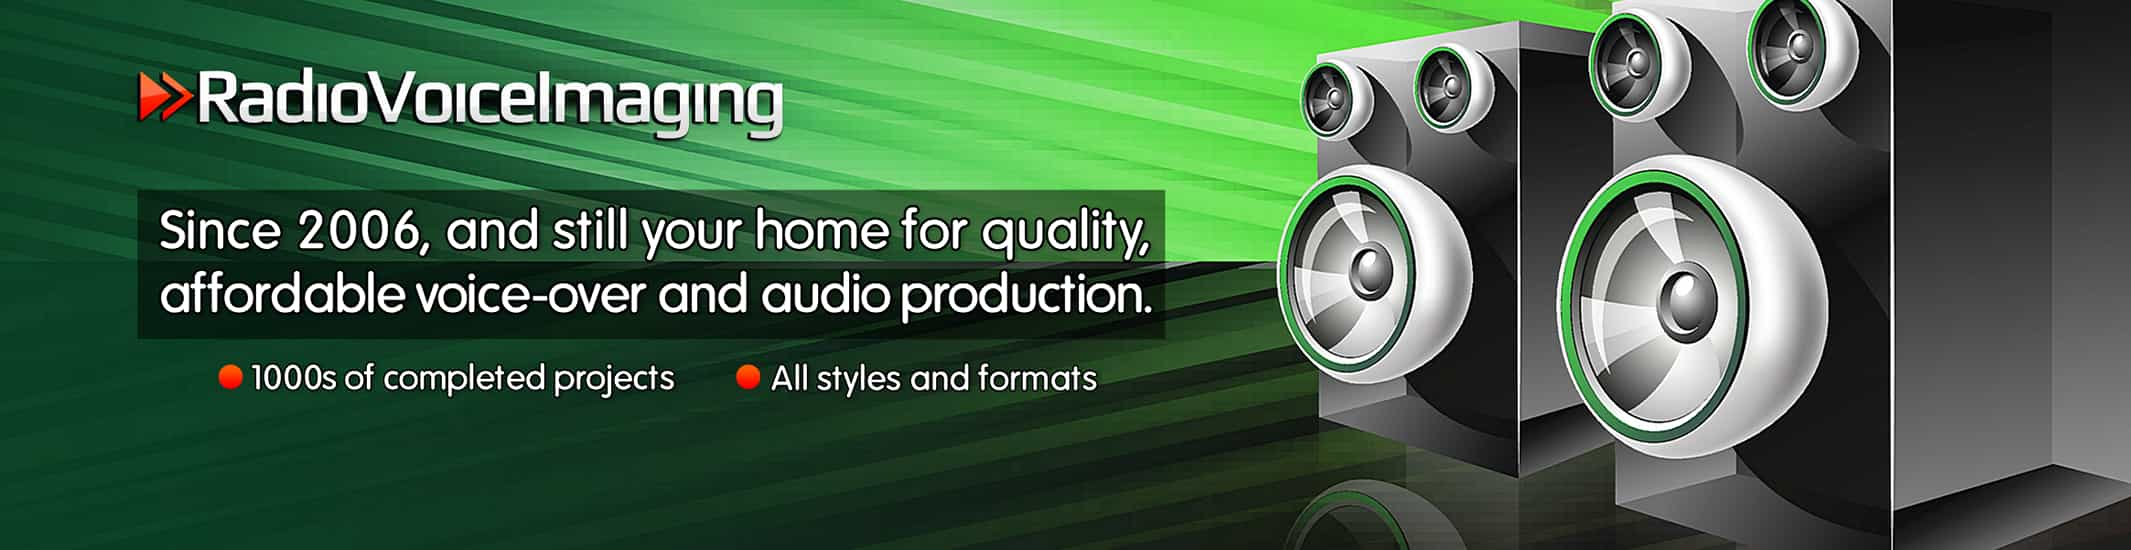 Since 2006 and still your home for affordable voice-over and production